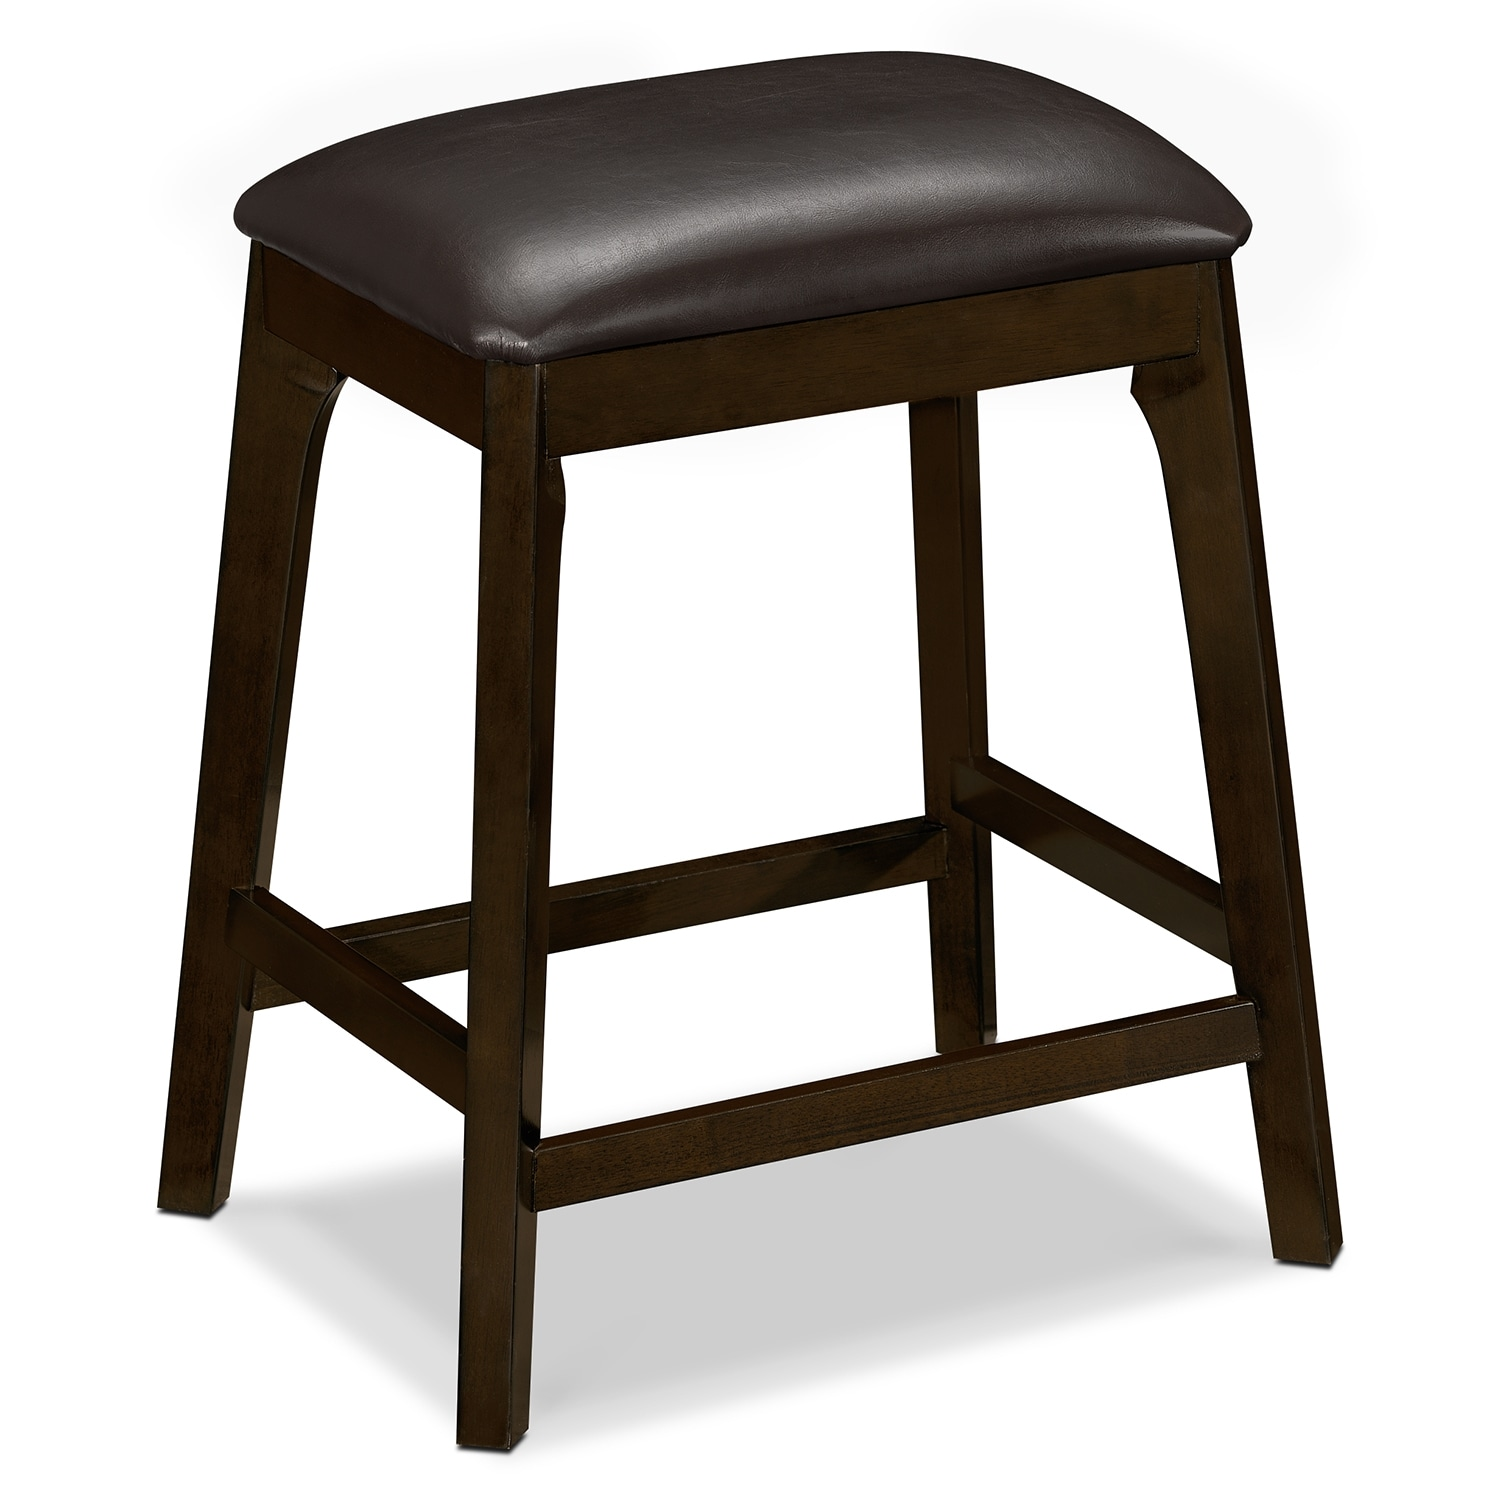 Mystic Backless Counter Height Stool Merlot and  : 283359 from www.valuecityfurniture.com size 1500 x 1500 jpeg 518kB